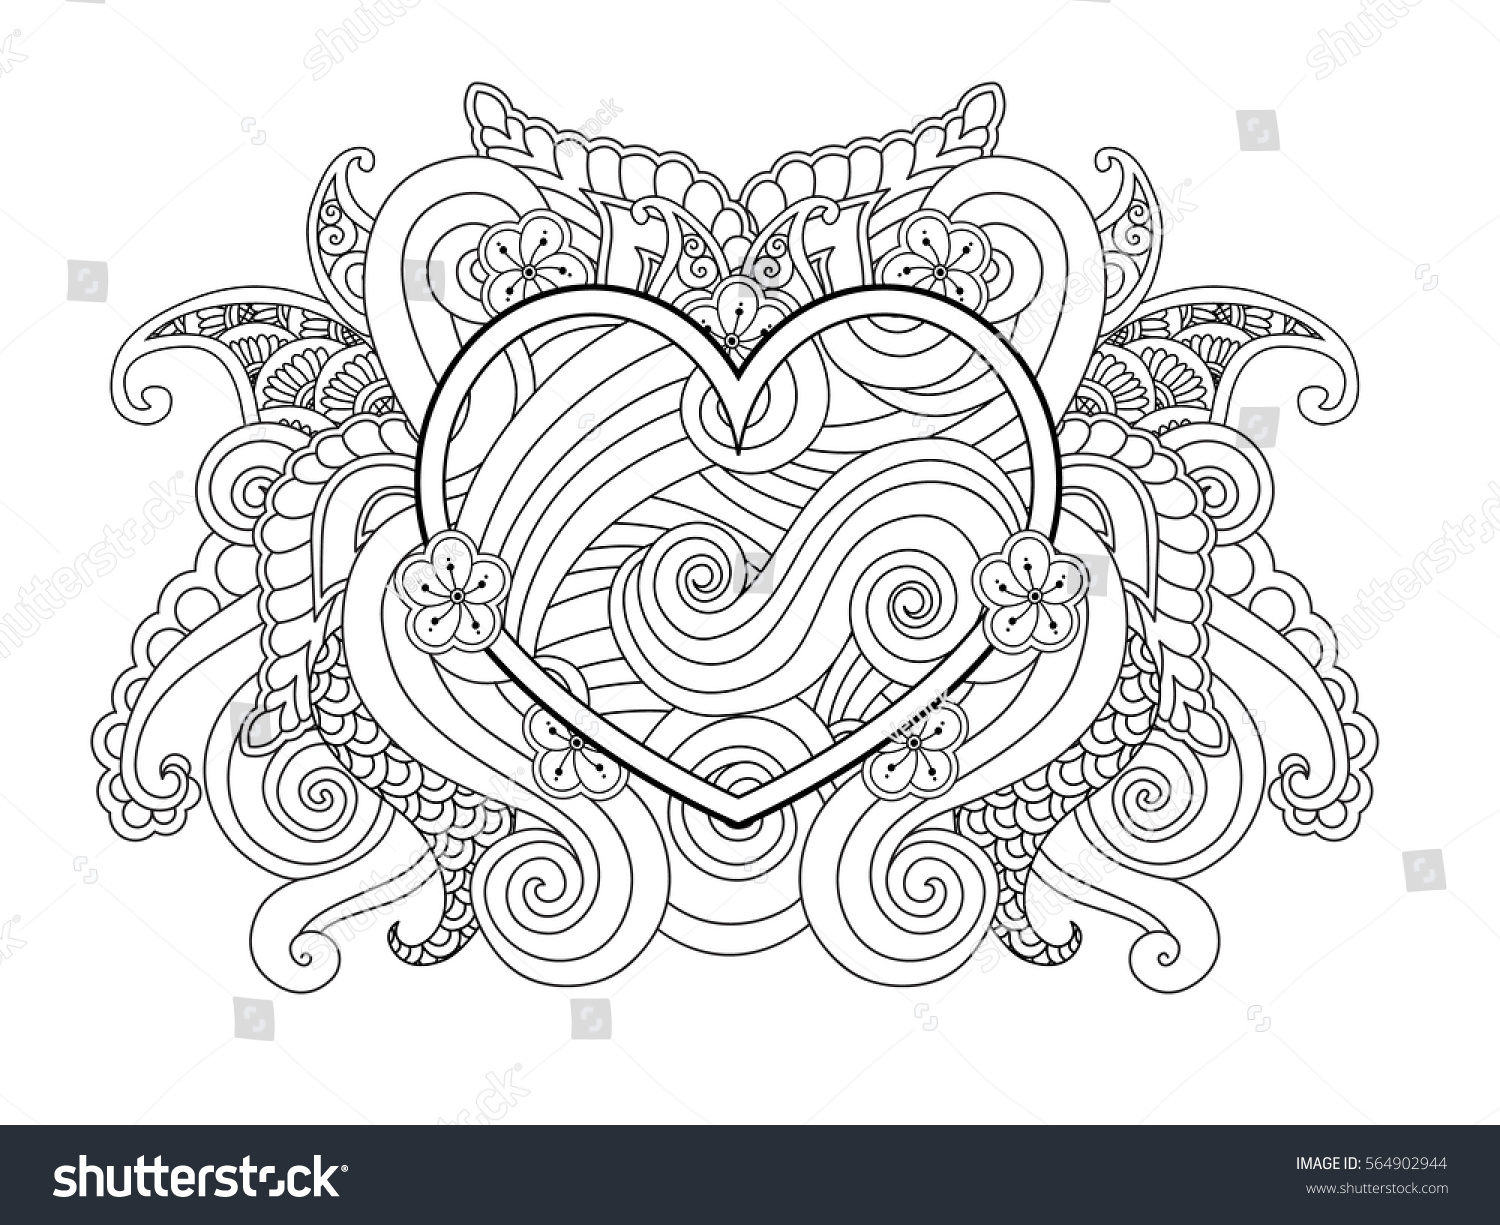 Coloring Page Heart Abstract Element Isolated Stock Vector (Royalty ...